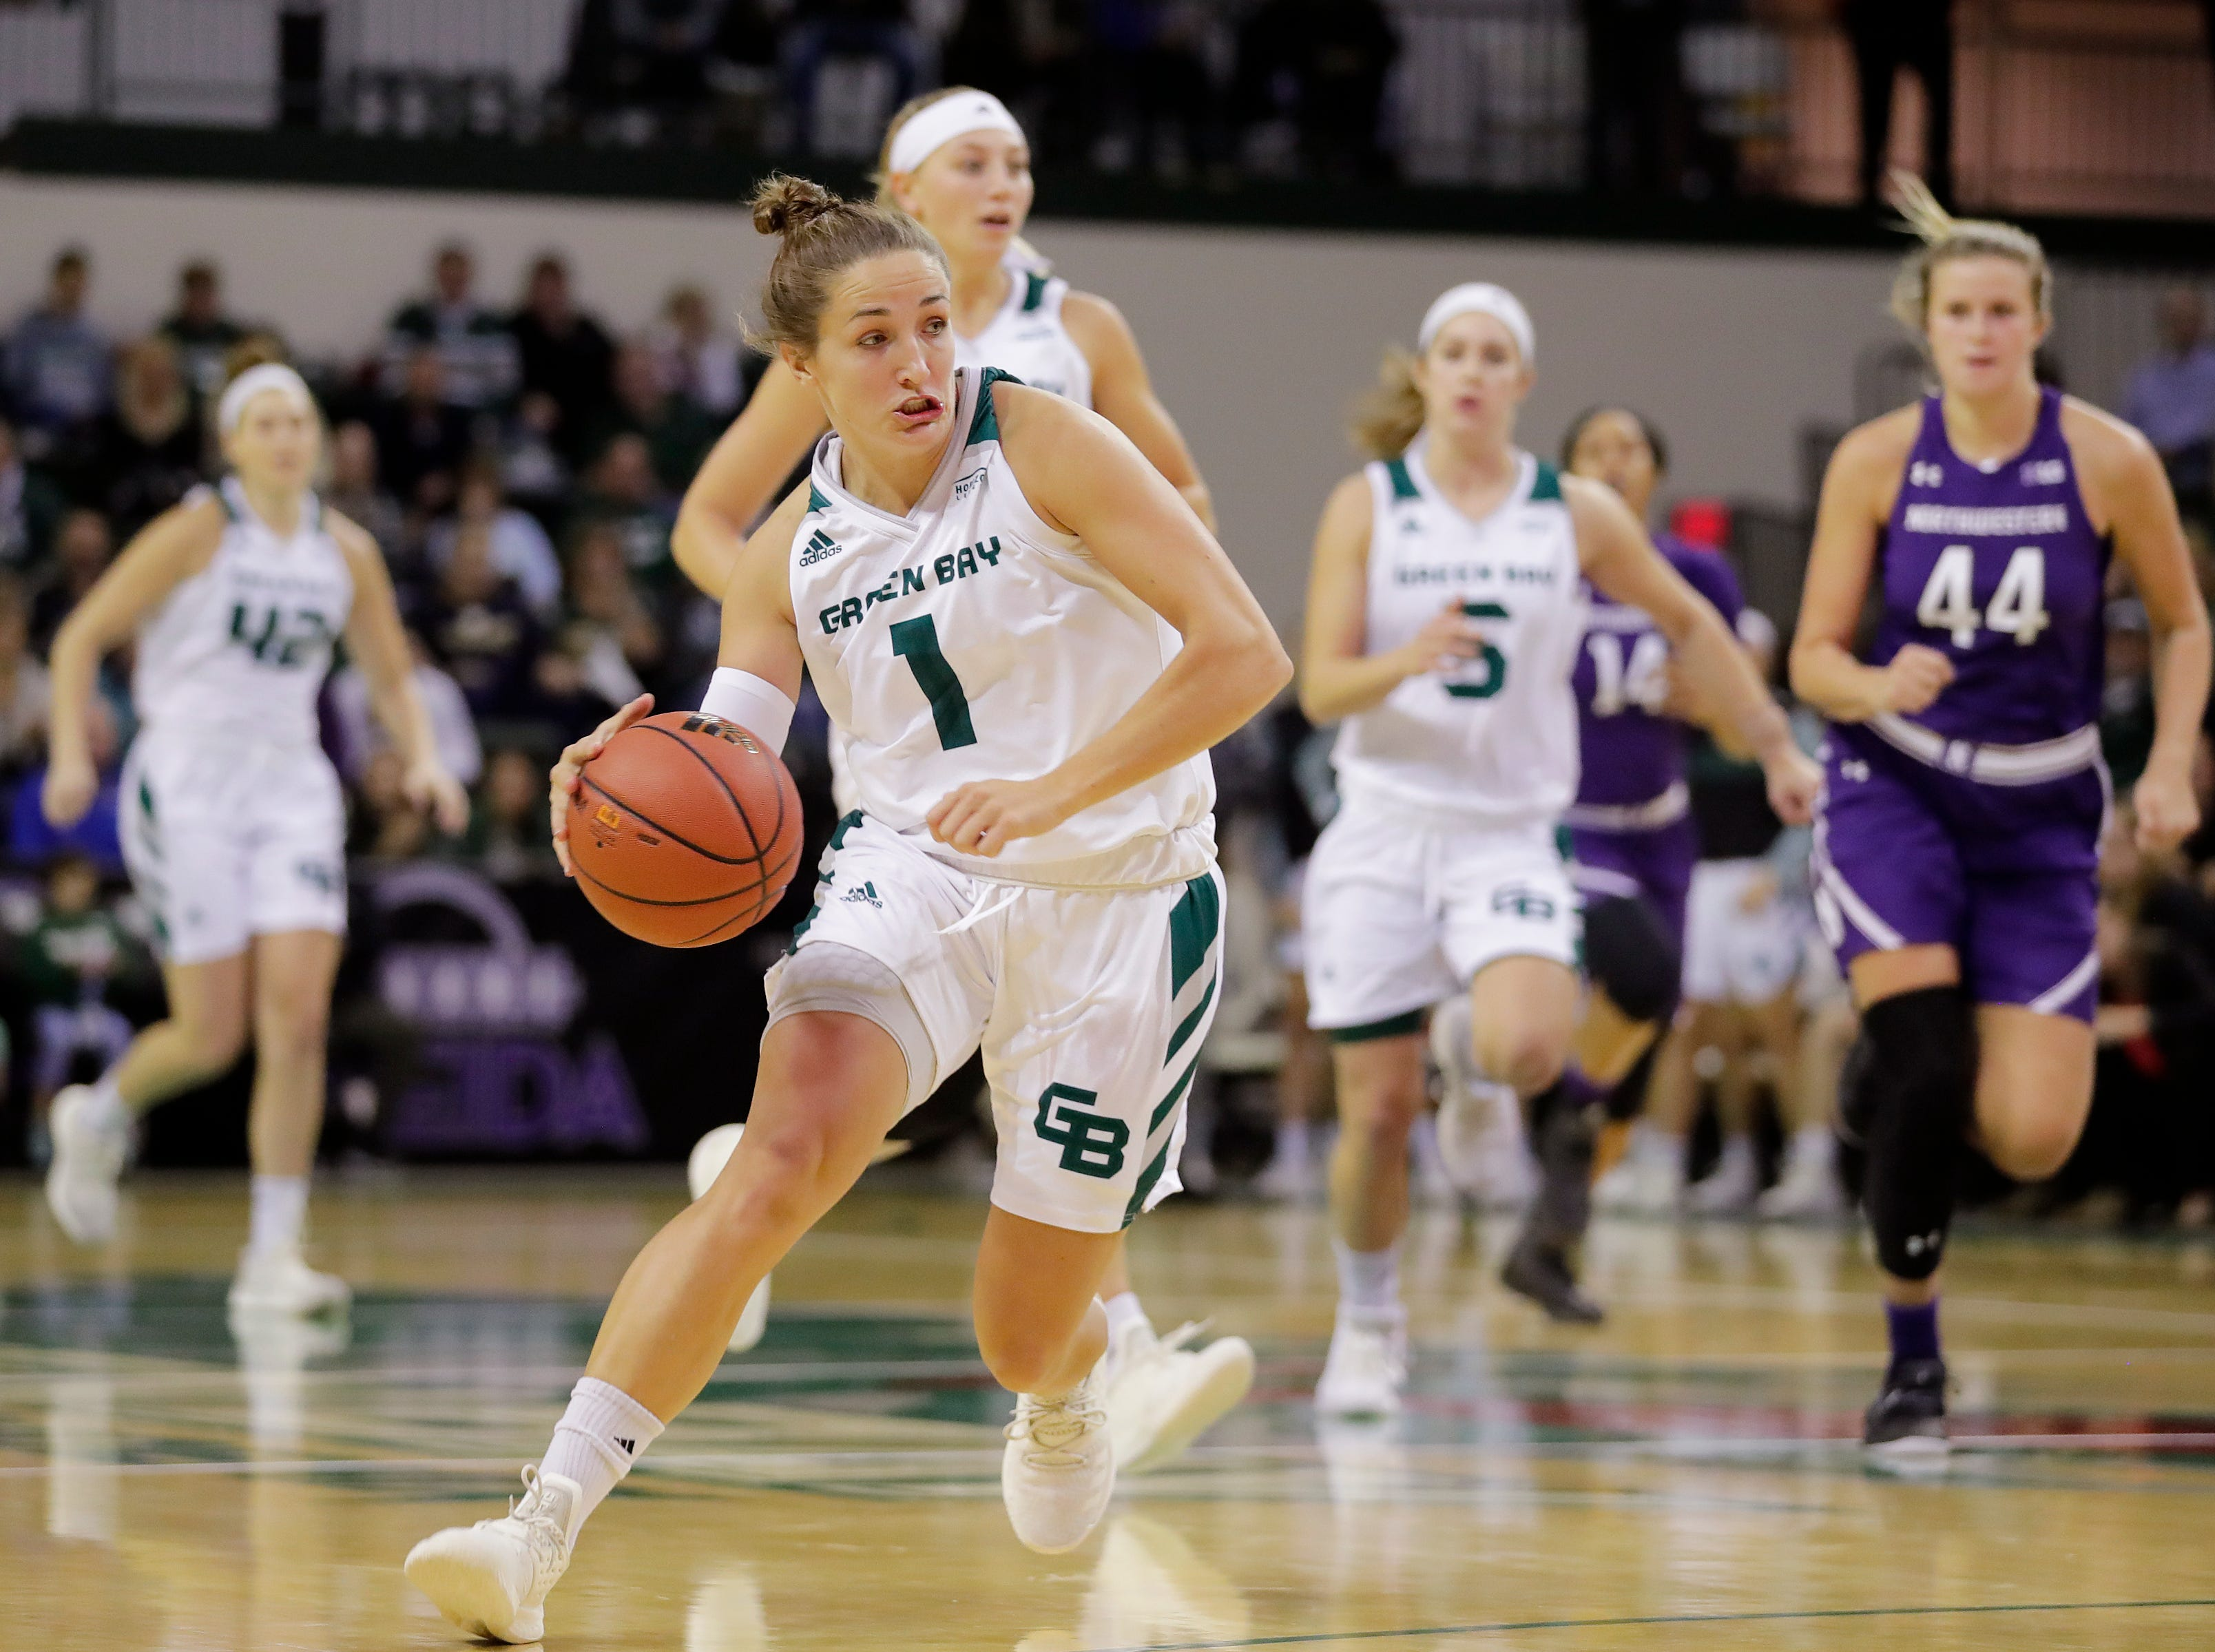 Green Bay Phoenix guard Jen Wellnitz (1) leads a breakaway against the Northwestern Wildcats in a women's NCAA basketball game at the Kress Center on Tuesday, November 6, 2018 in Green Bay, Wis.